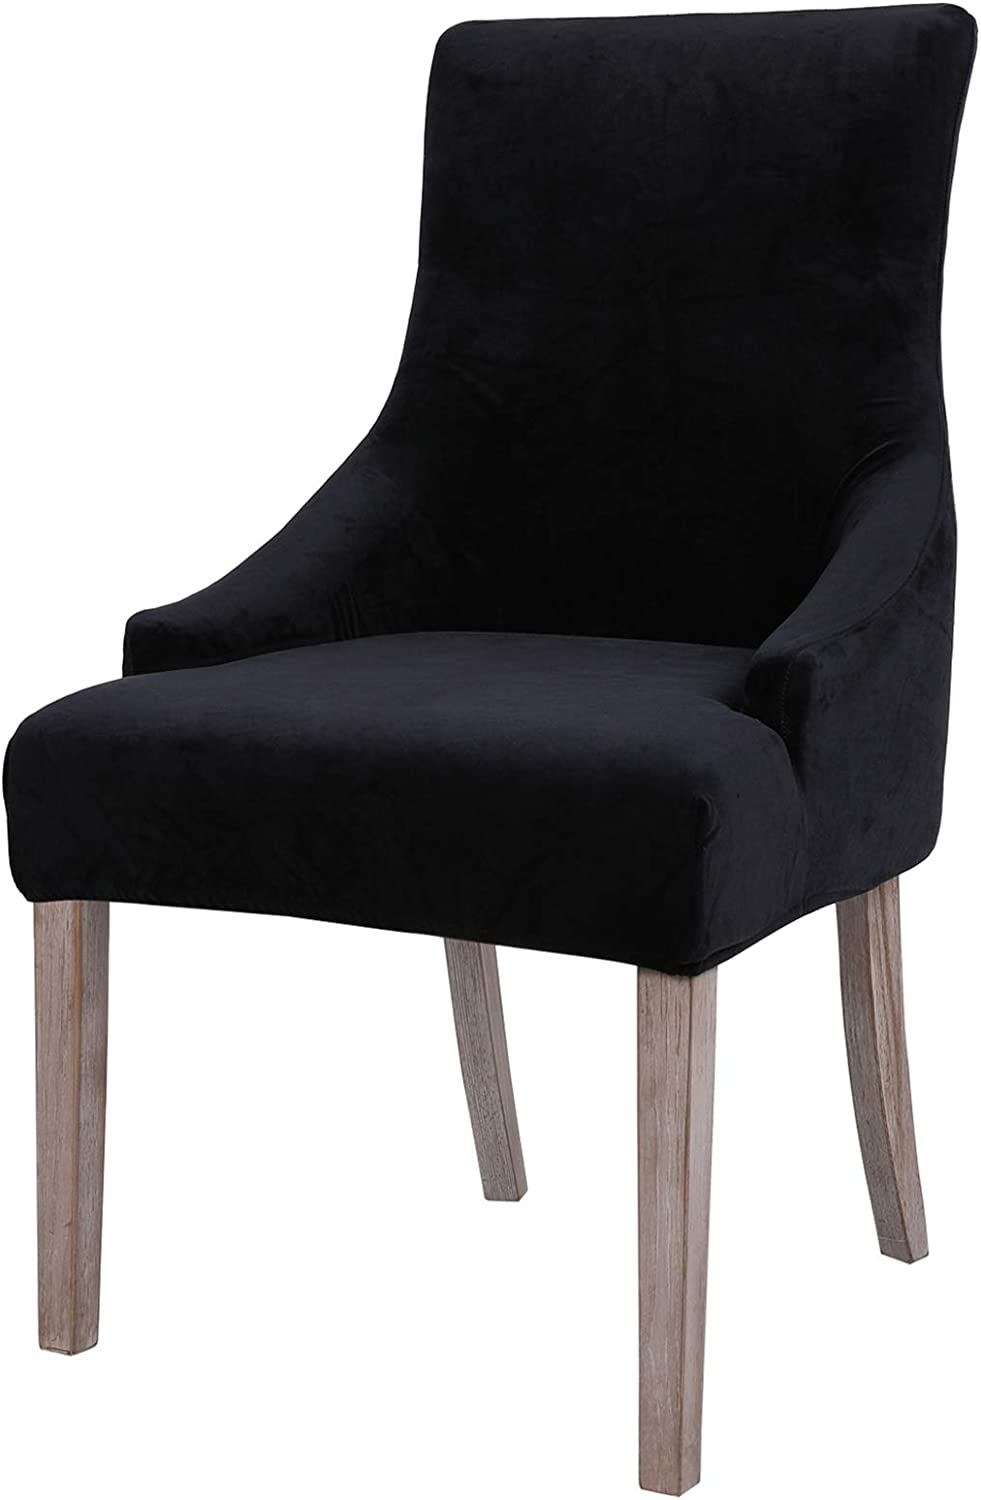 smiry Velvet Tufted Dining Chair Manufacturer direct delivery Wingback Si Fit Finally resale start Covers Stretch